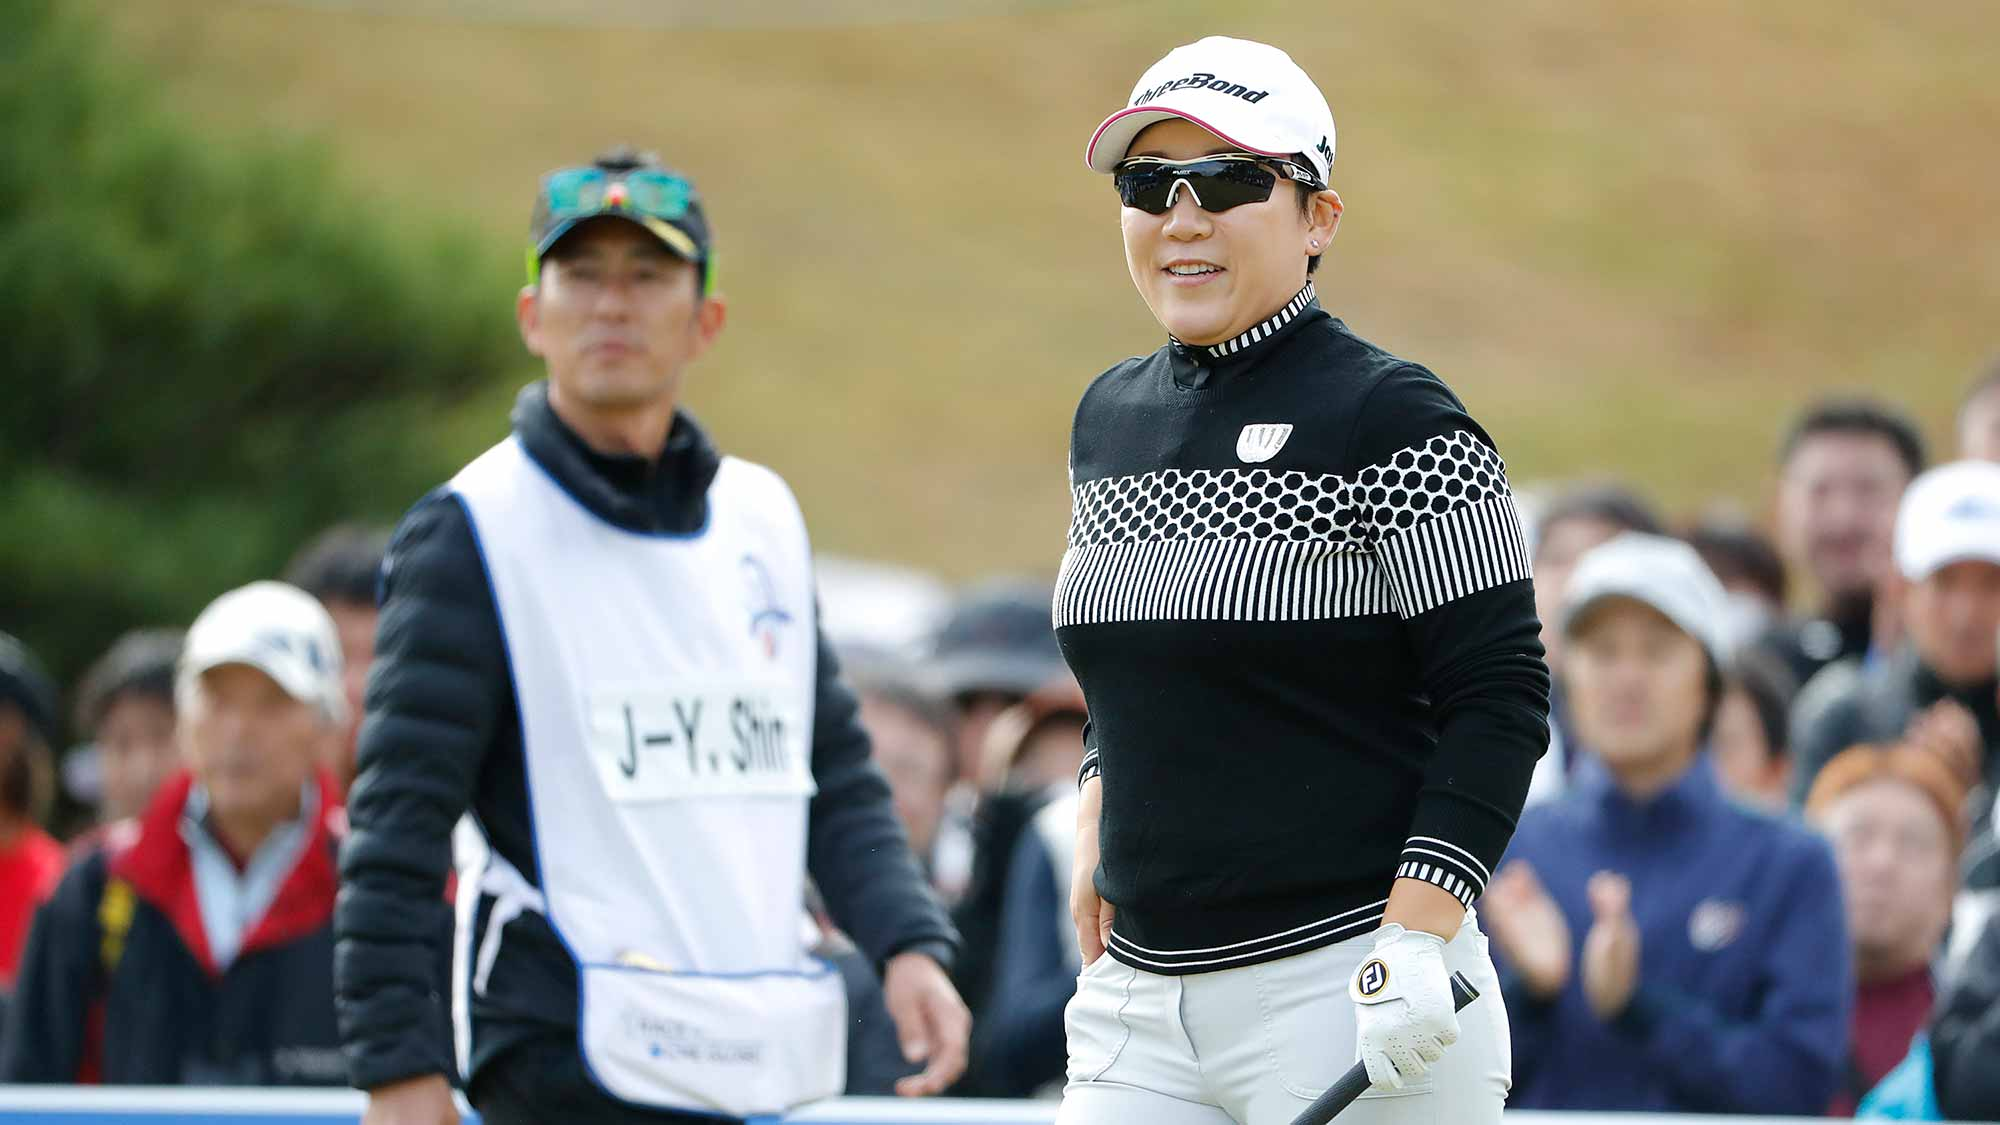 Jiyai Shin of South Korea watches on the first hole during the first round of the TOTO Japan Classic at Seta Golf Course on November 02, 2018 in Otsu, Shiga, Japan